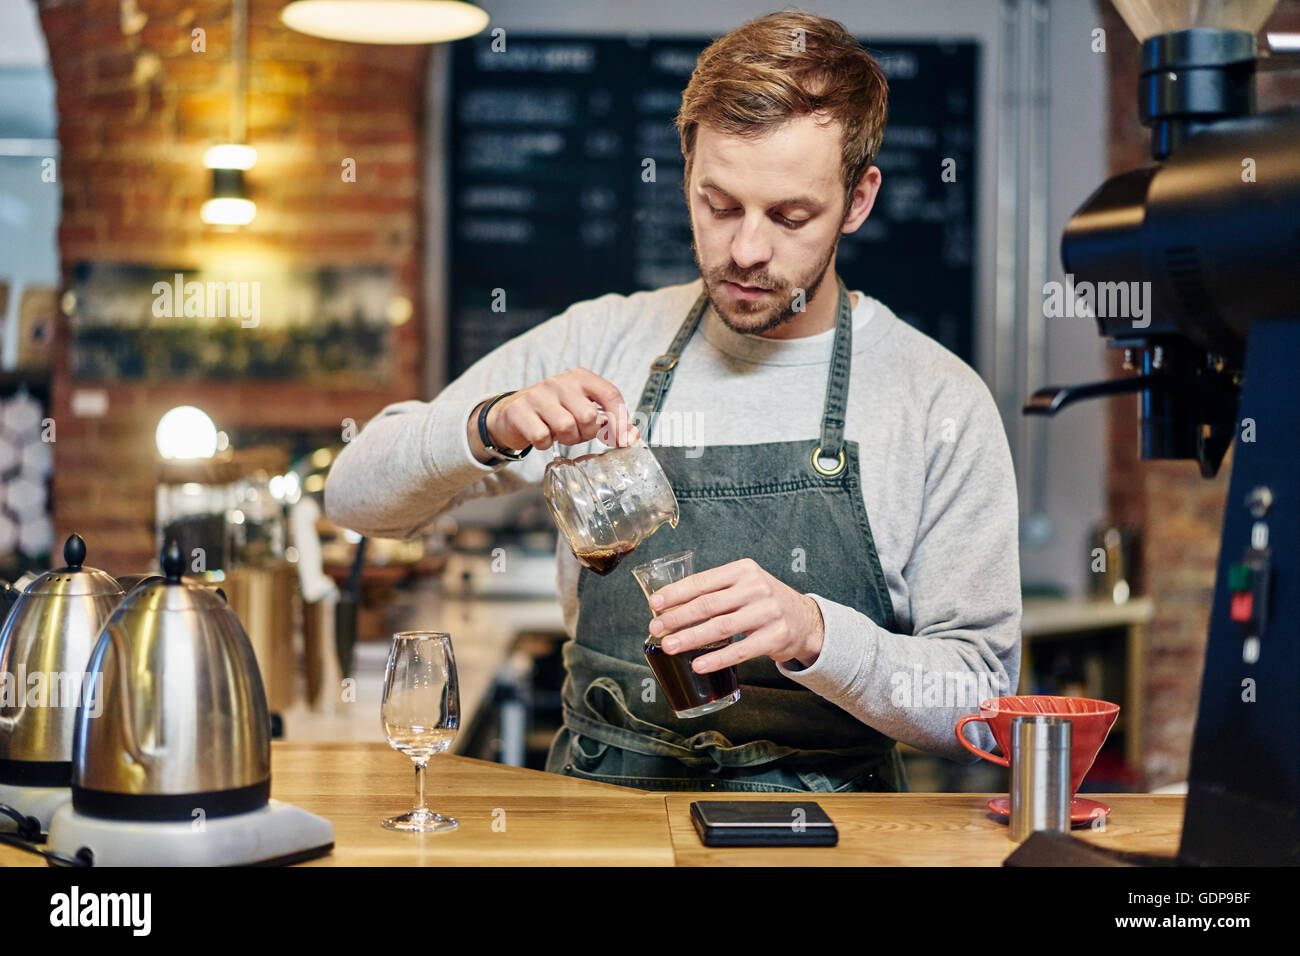 male barista pouring coffee at coffee shop kitchen counter stock photo 111743059 alamy. Black Bedroom Furniture Sets. Home Design Ideas